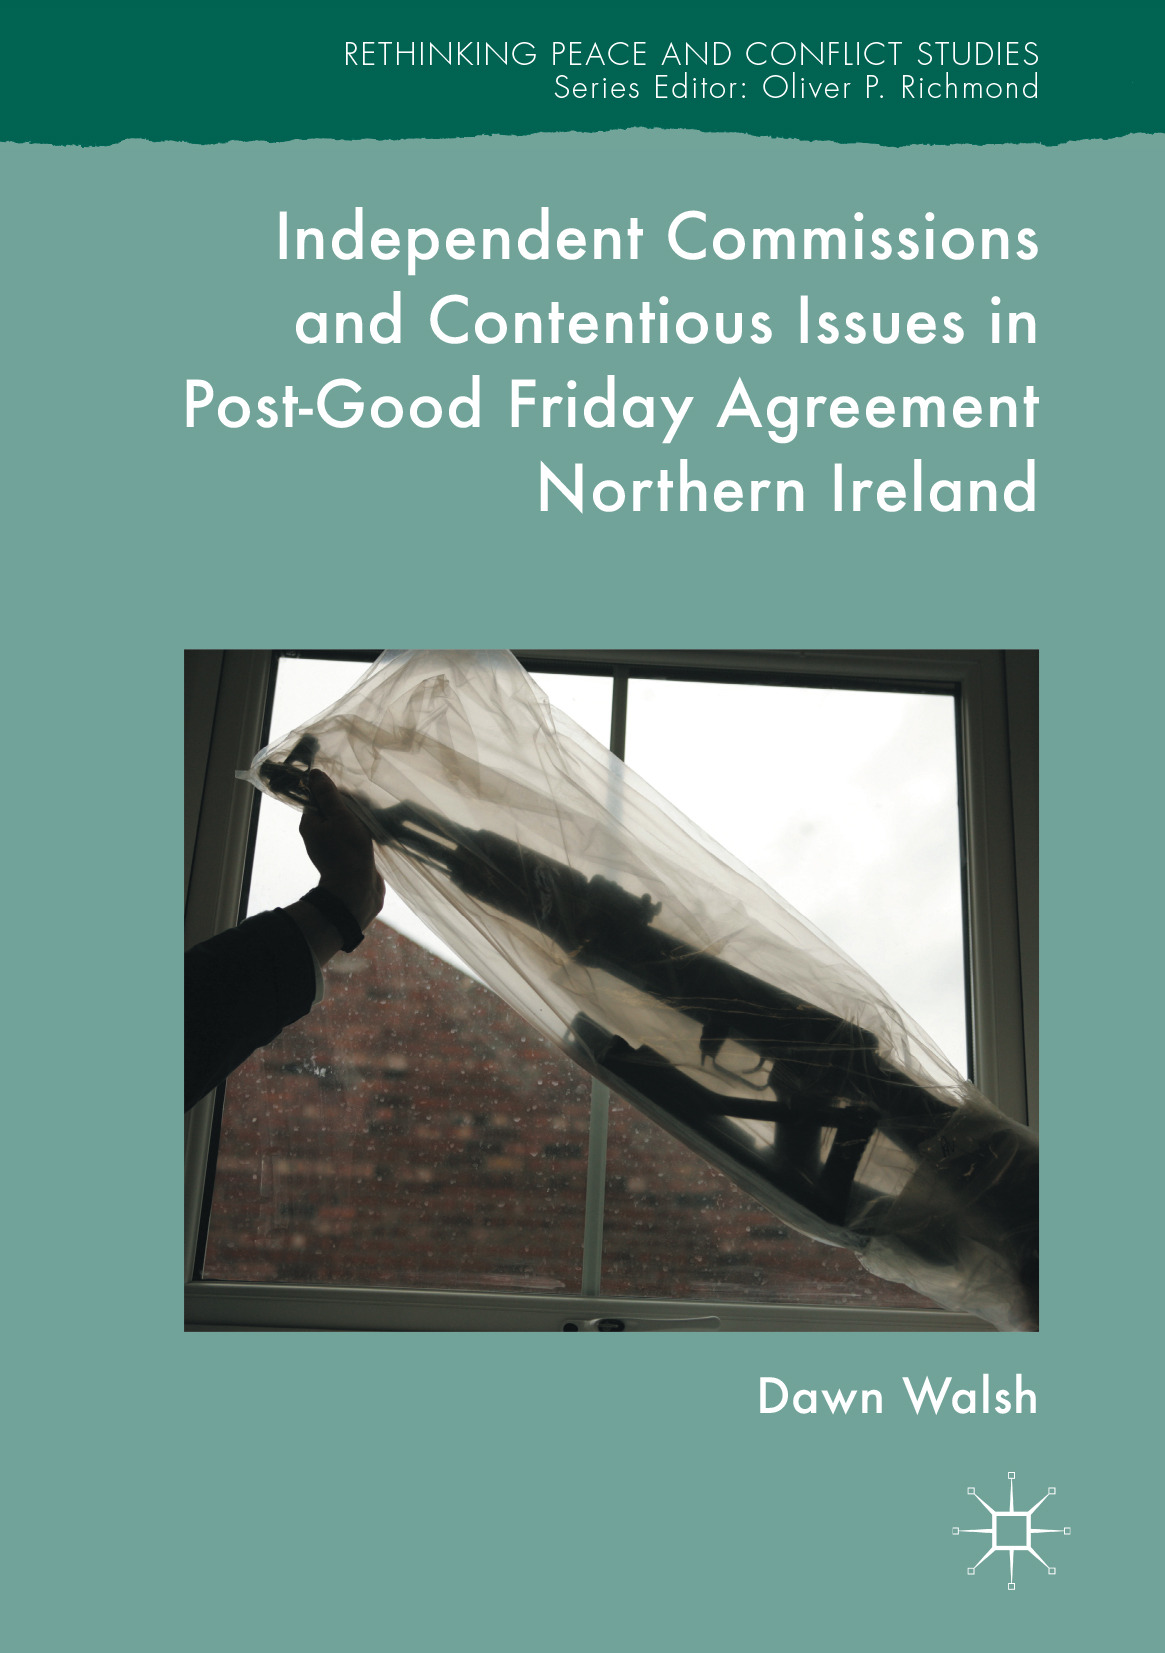 Walsh, Dawn - Independent Commissions and Contentious Issues in Post-Good Friday Agreement Northern Ireland, ebook